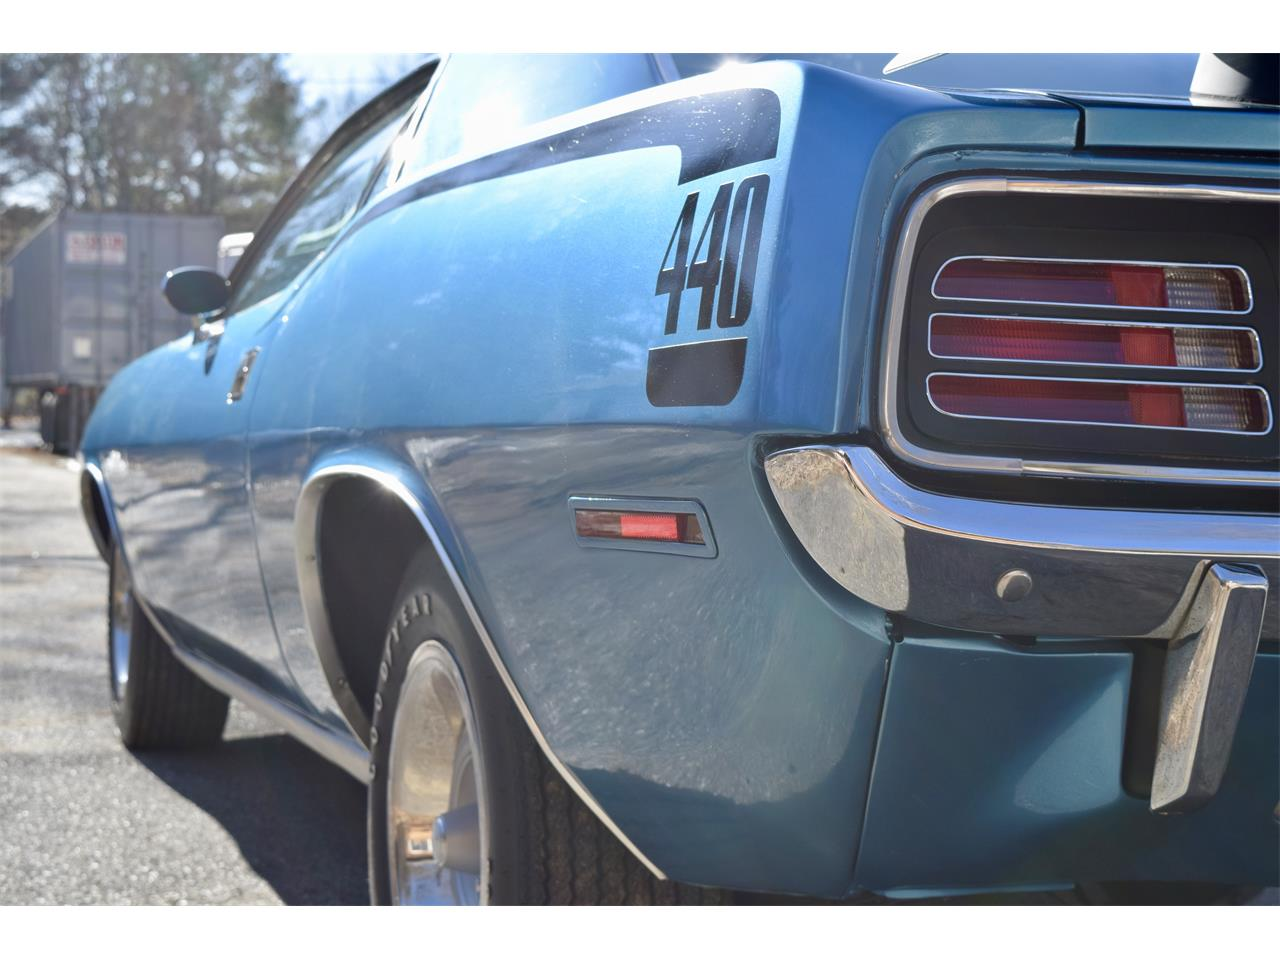 1970 Plymouth Cuda (CC-1189477) for sale in Stow, Massachusetts